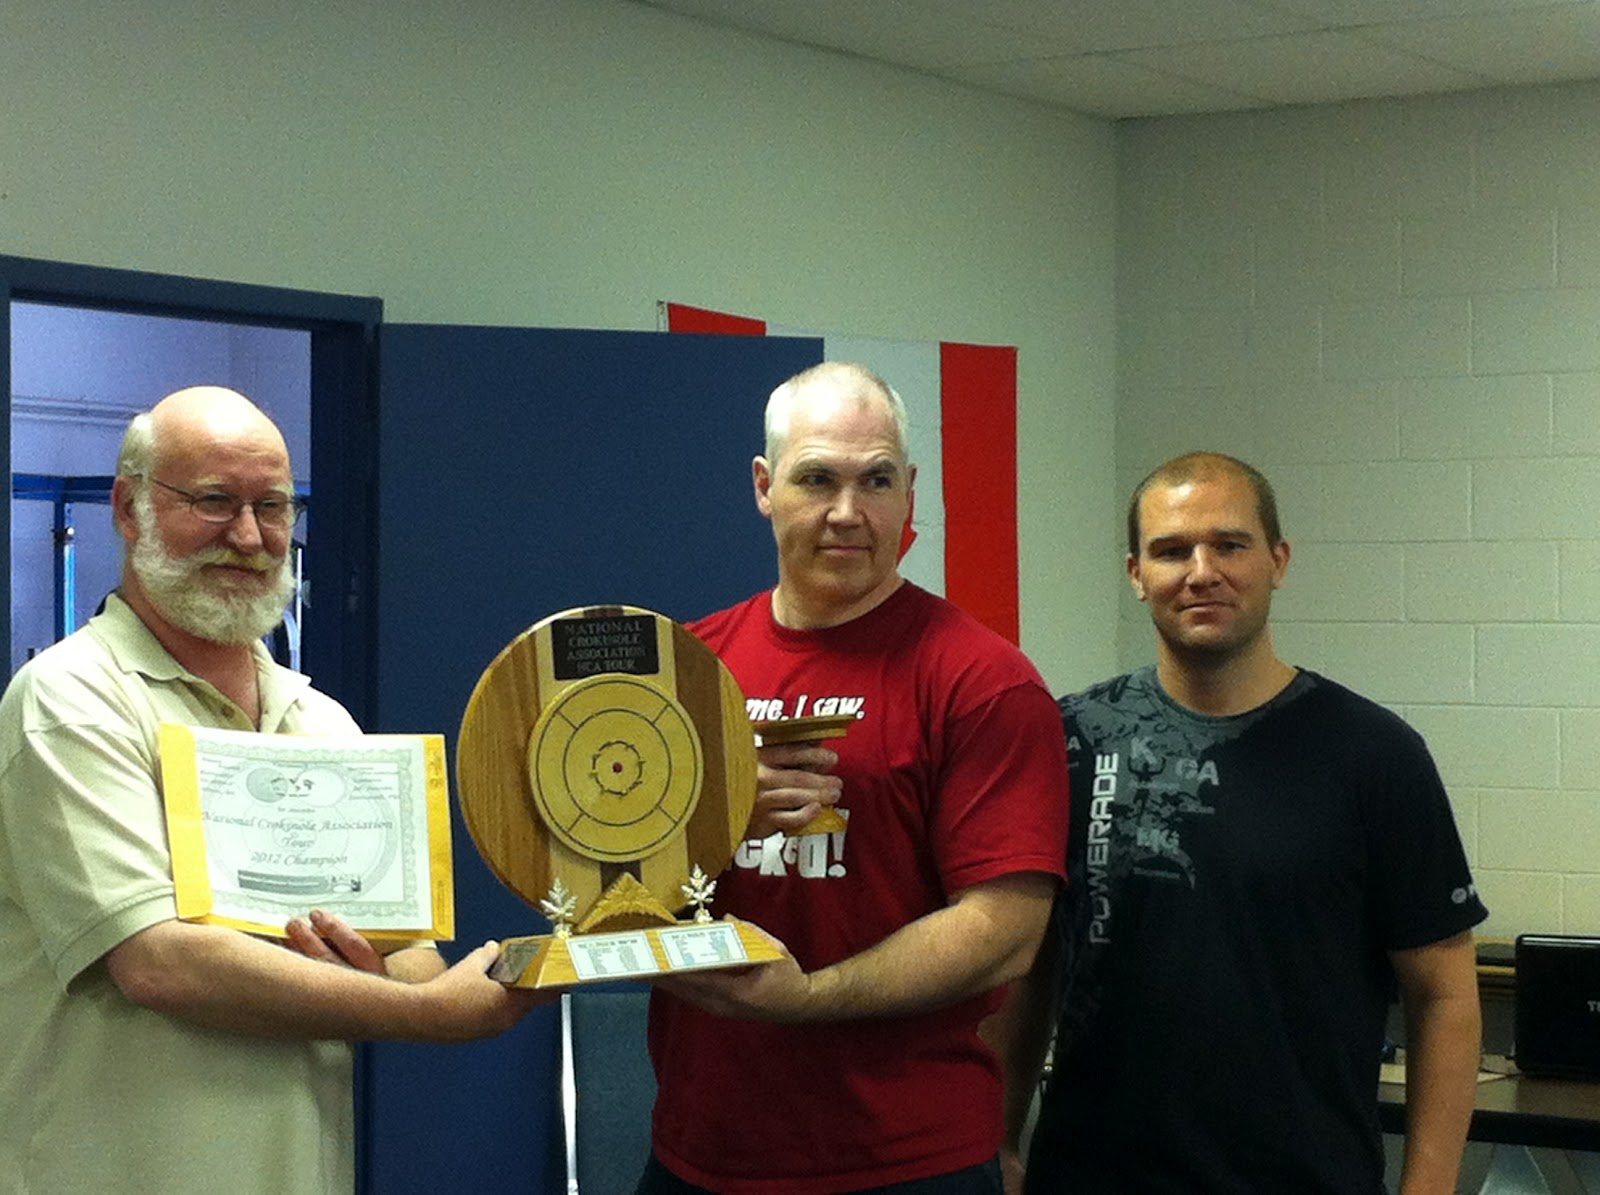 Brian Cook (centre) accepts the NCA's top prize from NCA Executives, Eric Miltenburg (left) and Greg Matthison (right).